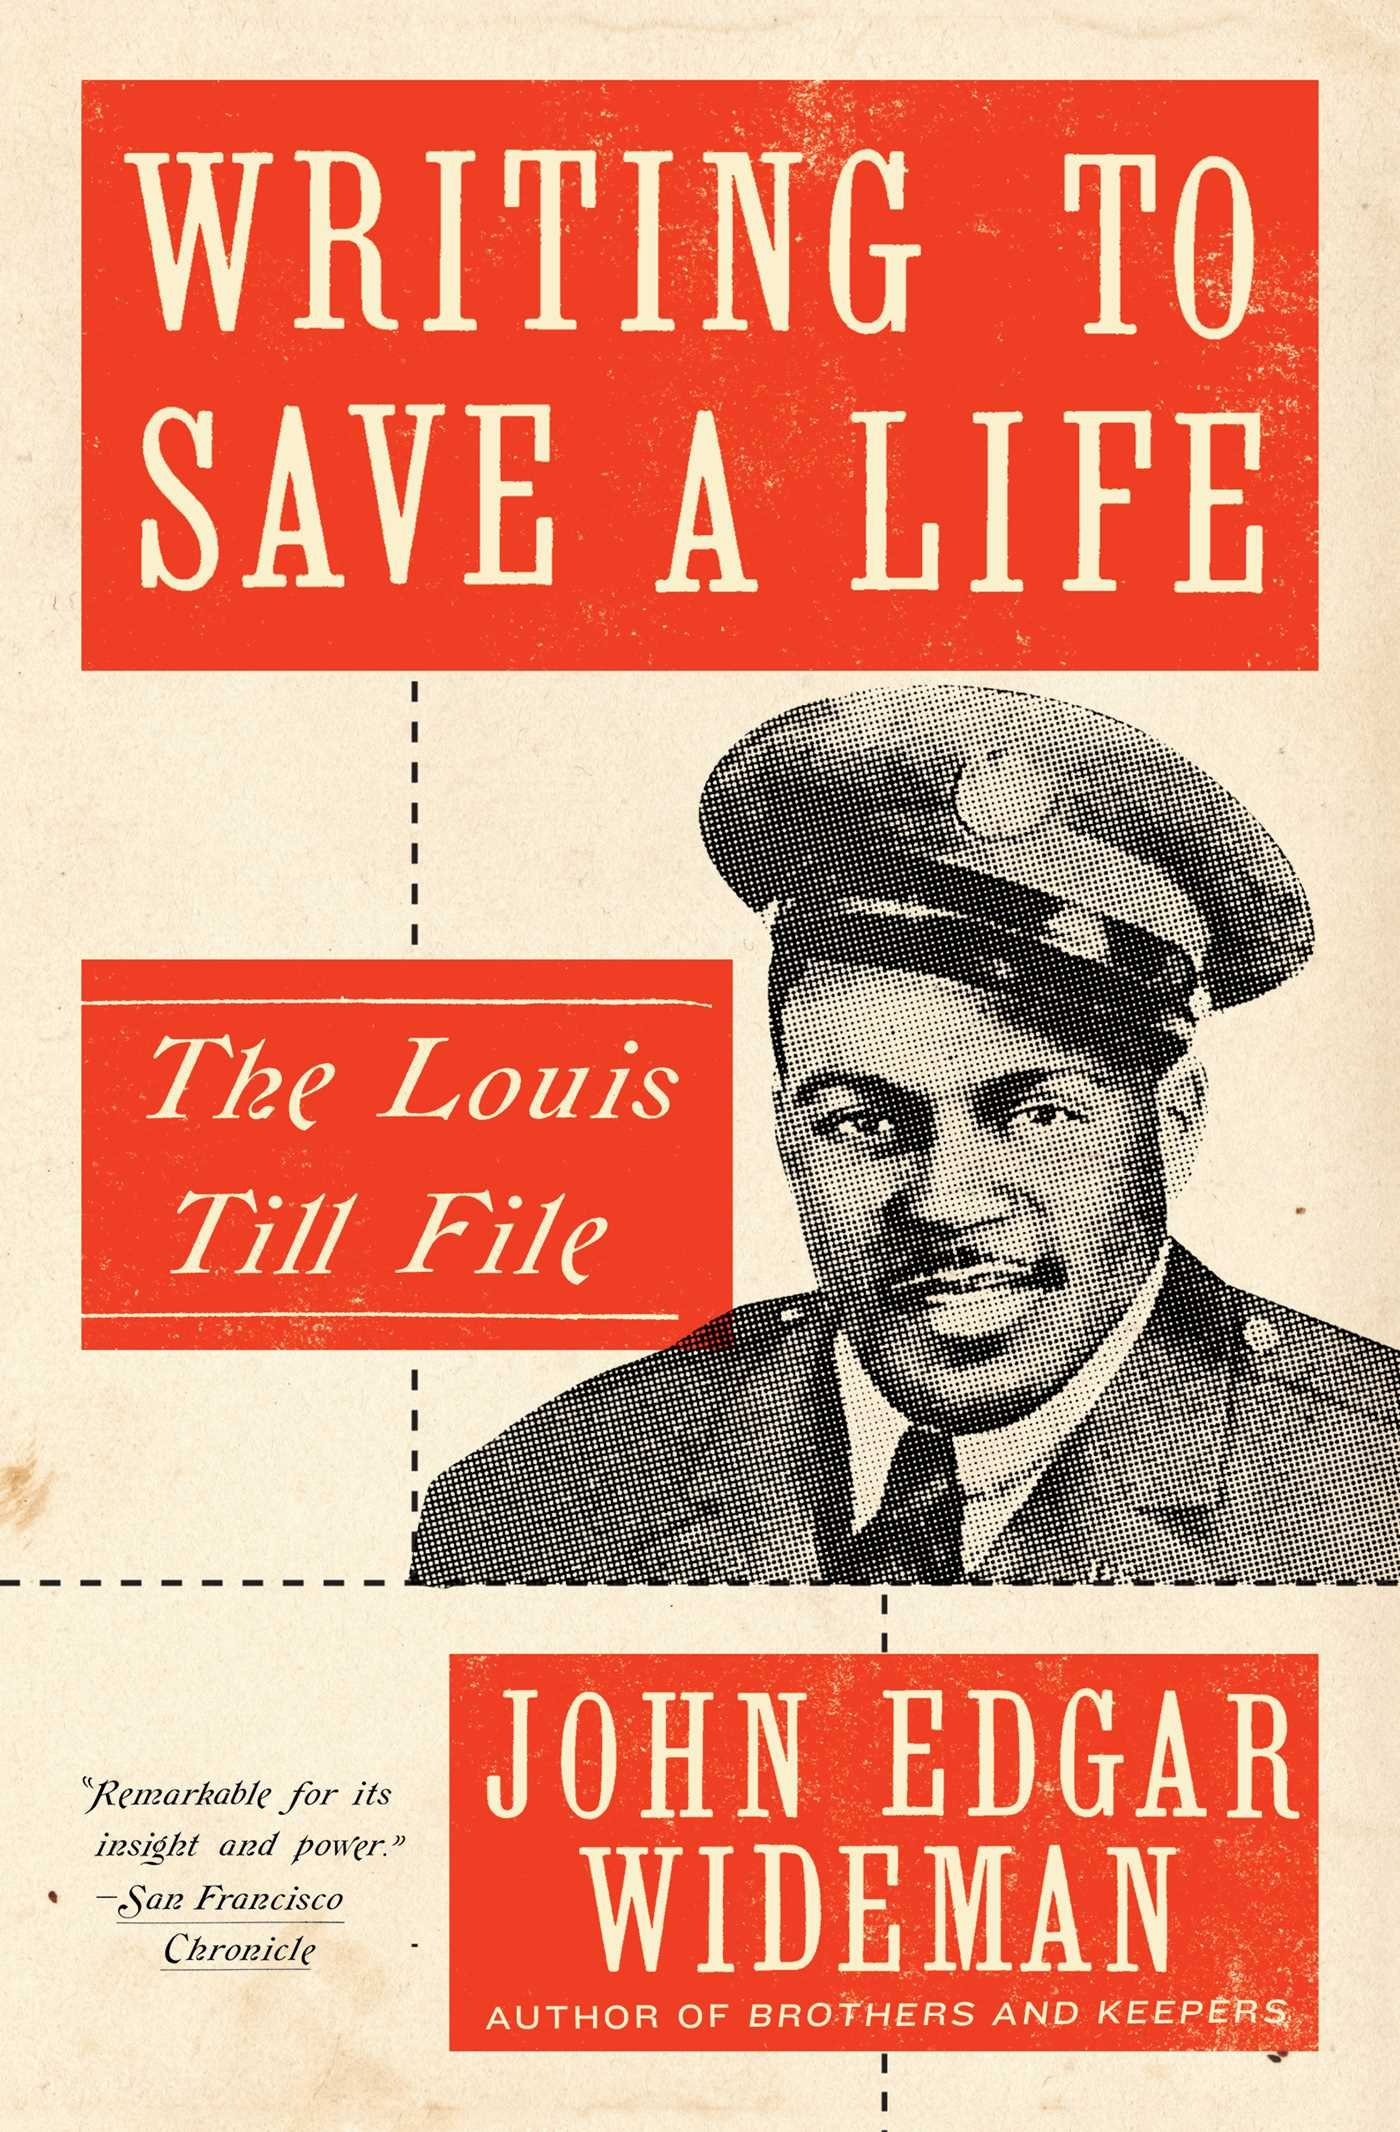 Download Writing to Save a Life: The Louis Till File ePub fb2 book